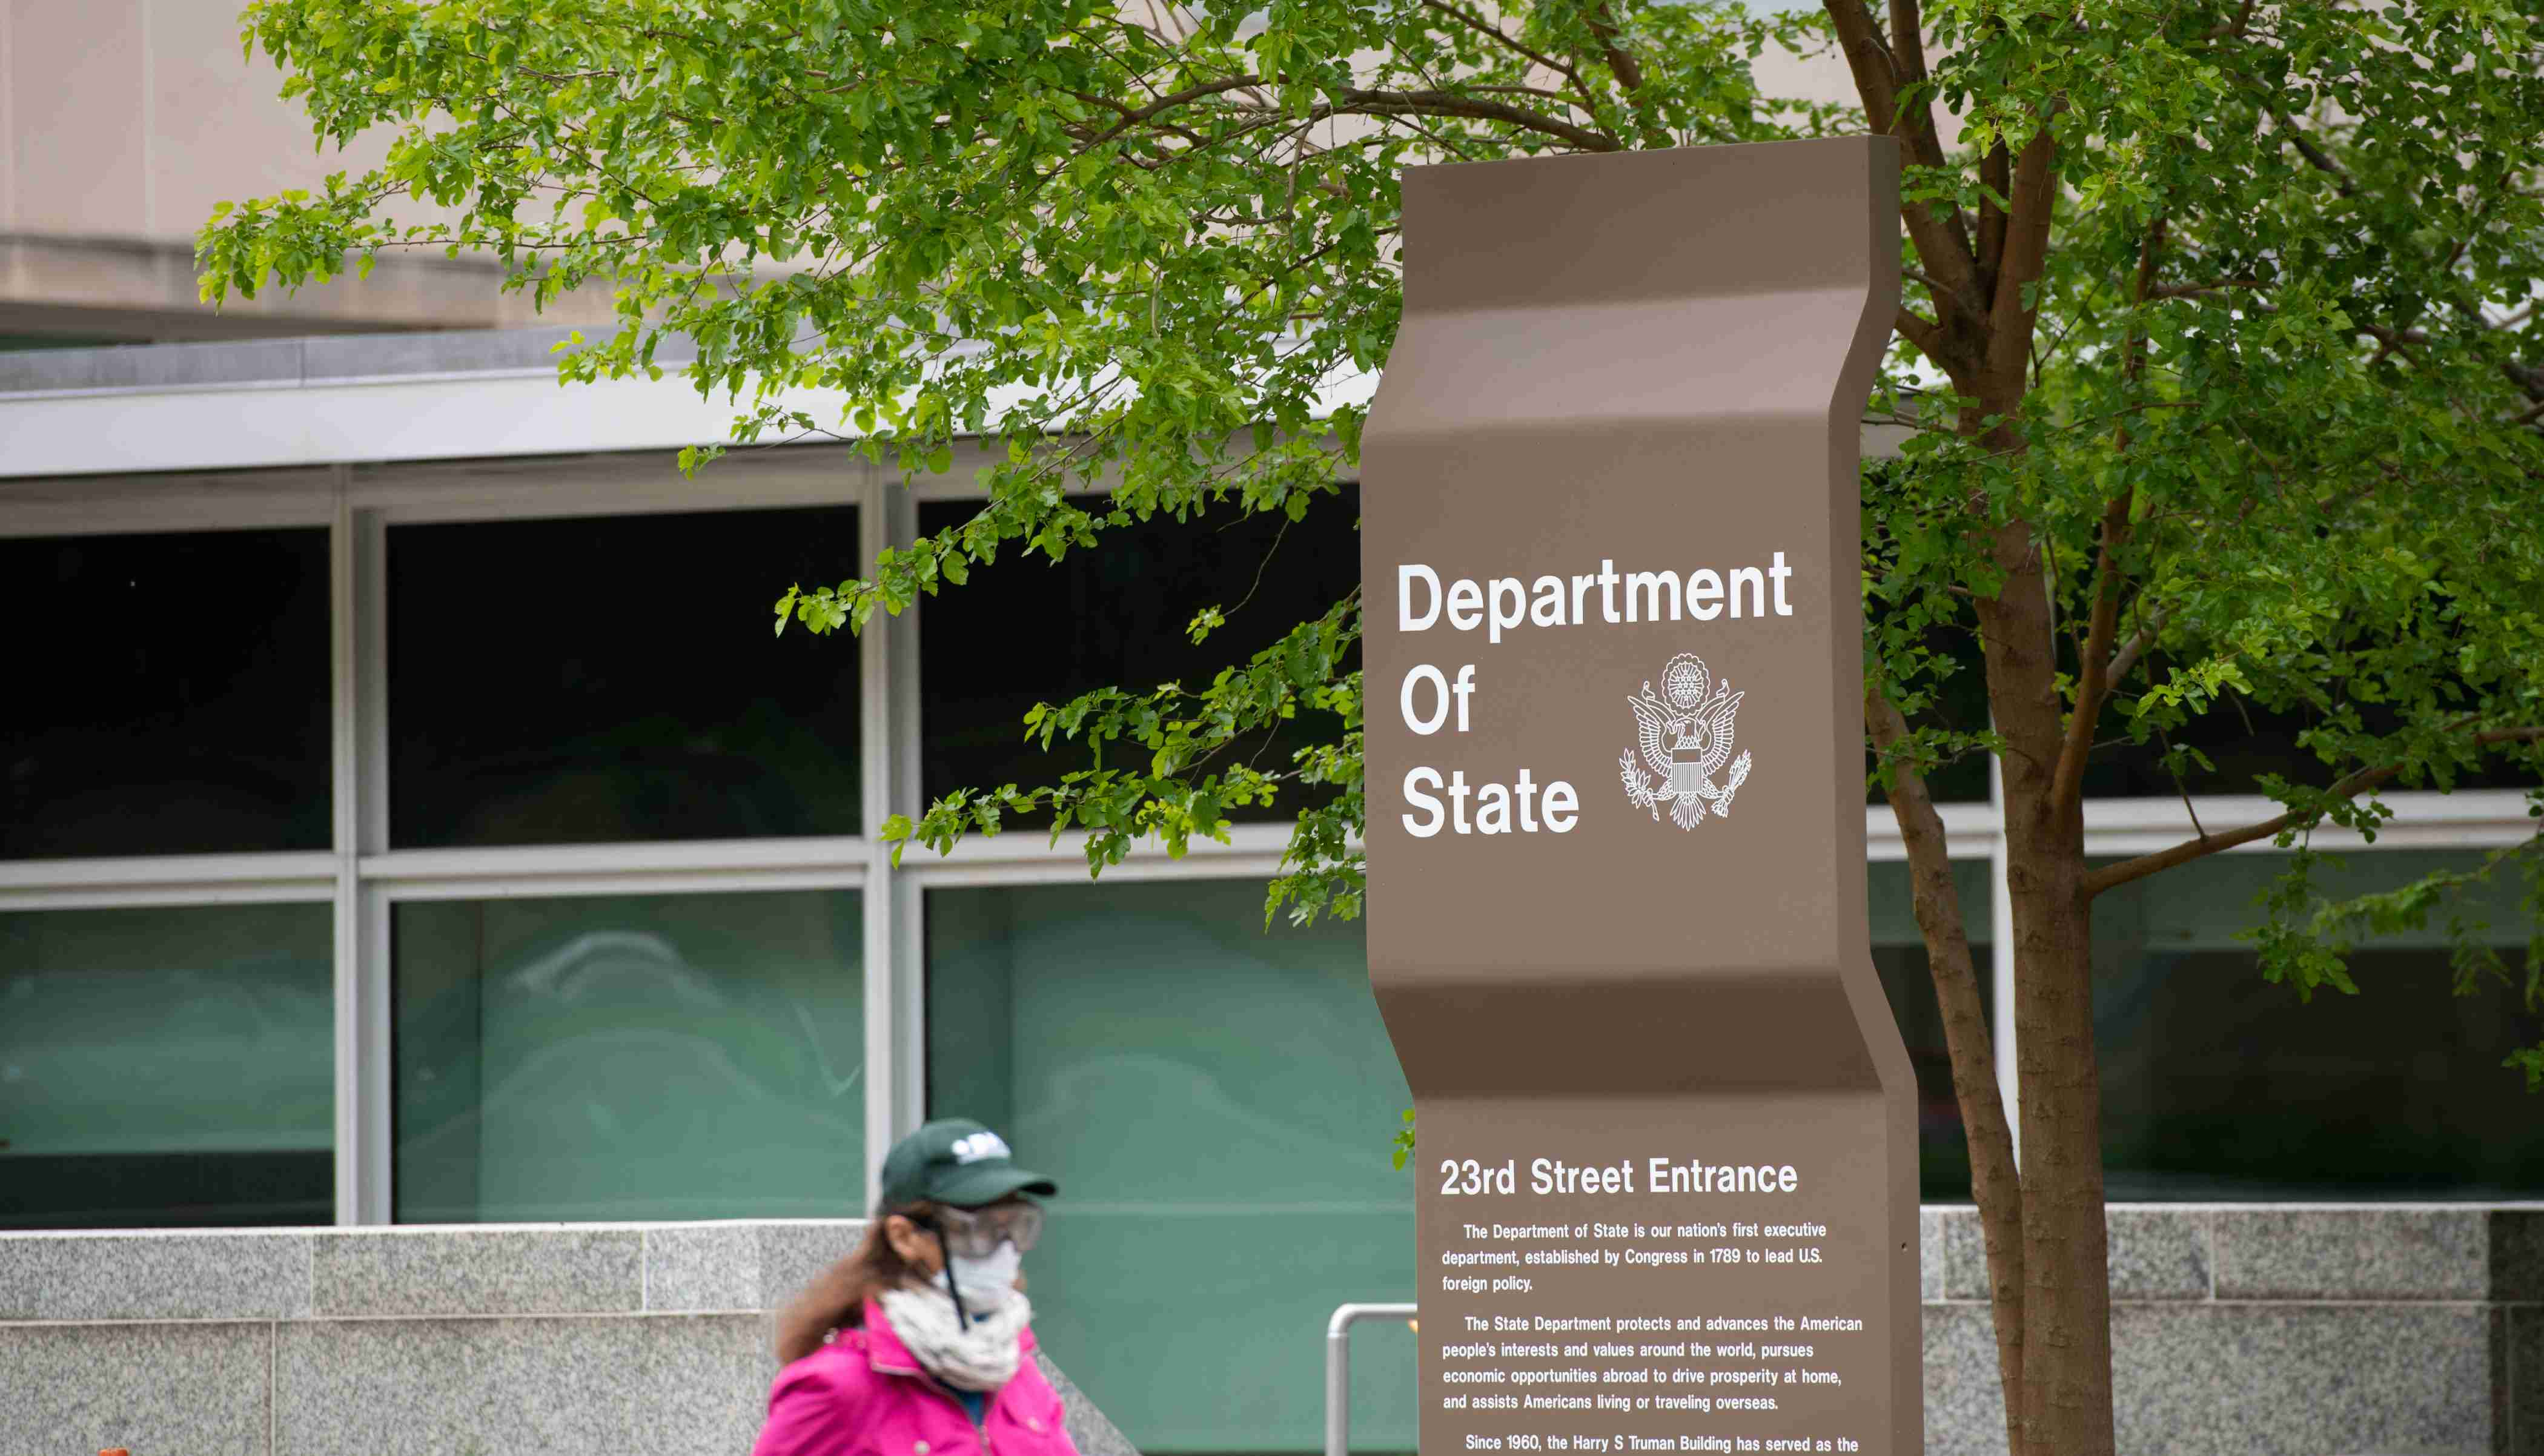 A pedestrian wearing gloves, goggles and a mask walks by the State Department in Washington, D.C. on April 23, 2020 amid the Coronavirus pandemic. After extended negotiations over an additional $500 billion in stimulus funding in response to the ongoing COVID-19 outbreak, the U.S. Congress is set send another economic relief bill to President Trump to sign into law after a House vote later today. (Graeme Sloan/Sipa USA)No Use UK. No Use Germany.